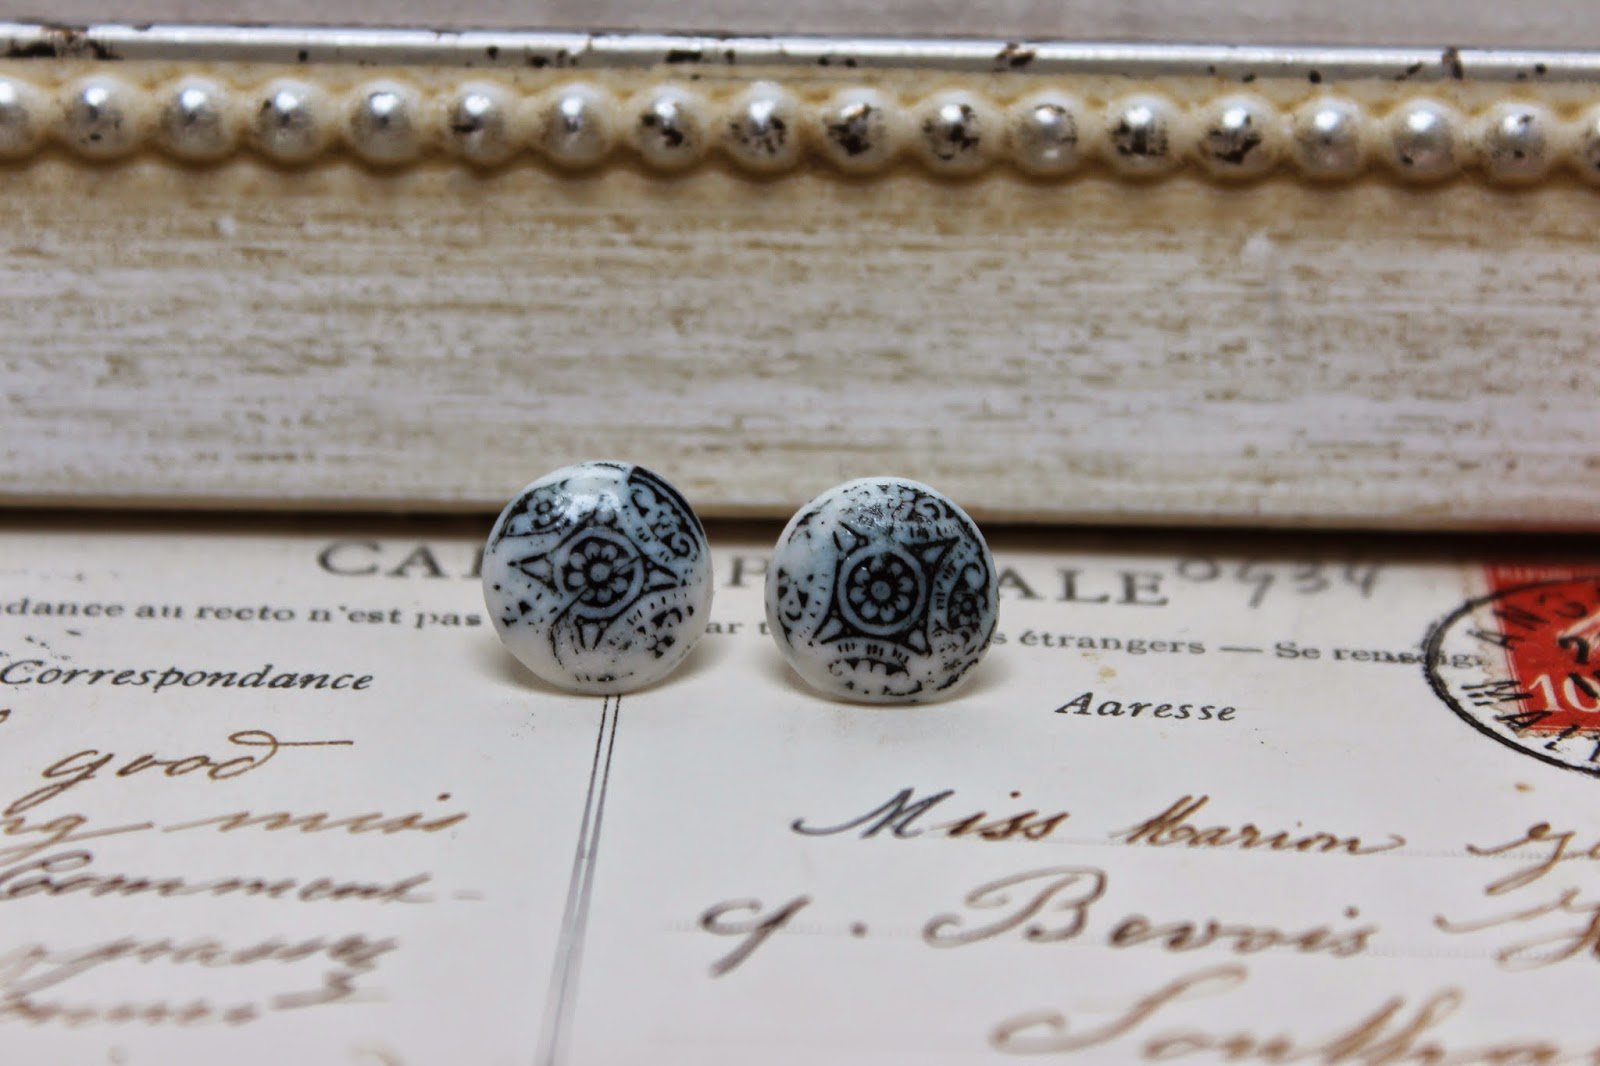 http://www.amanda-mercer.co.uk/pretty-things-for-you/patterned-button-stud-earrings